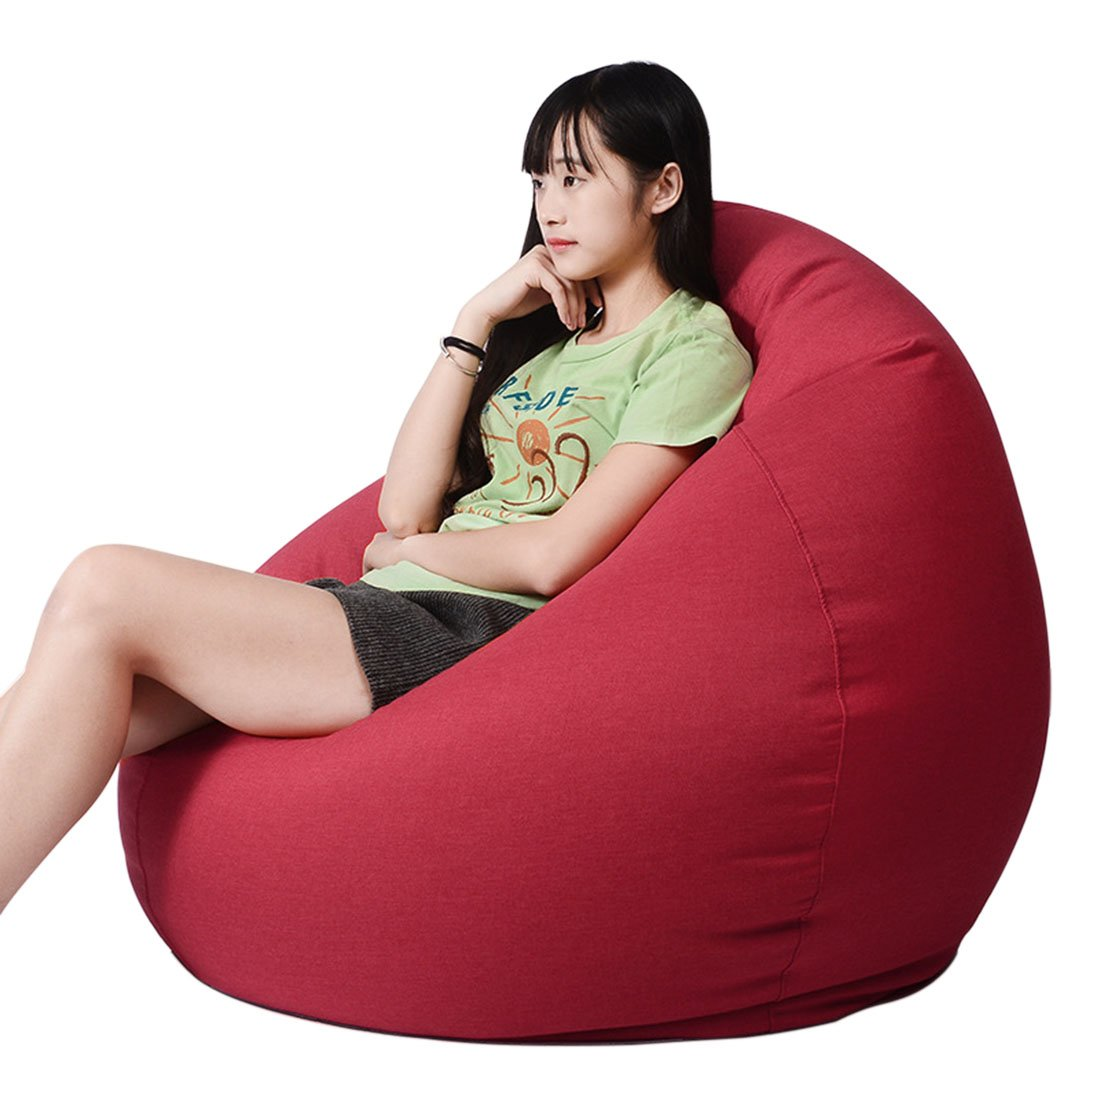 Enerhu Adult Beanbag Kids Bean Bag Chair Indoor Outdoor Floor Cushion Sofa Comfortable Removable Cover Apricot